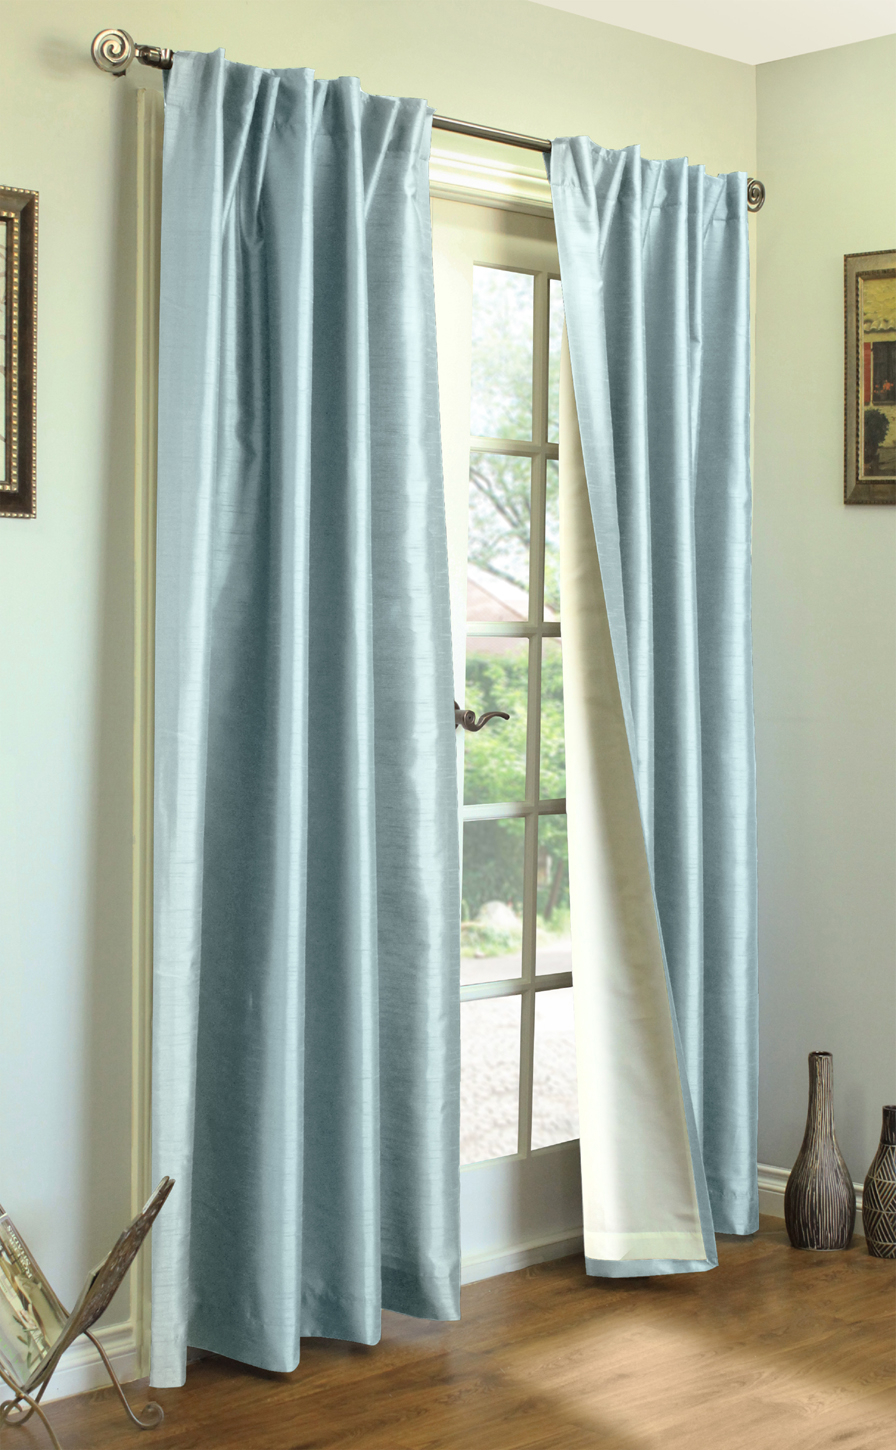 Ming Lined Thermasilk – Two Ways To Hang Curtain Panels (Pair) Within Trendy Curtain Panel Pairs (Gallery 3 of 20)